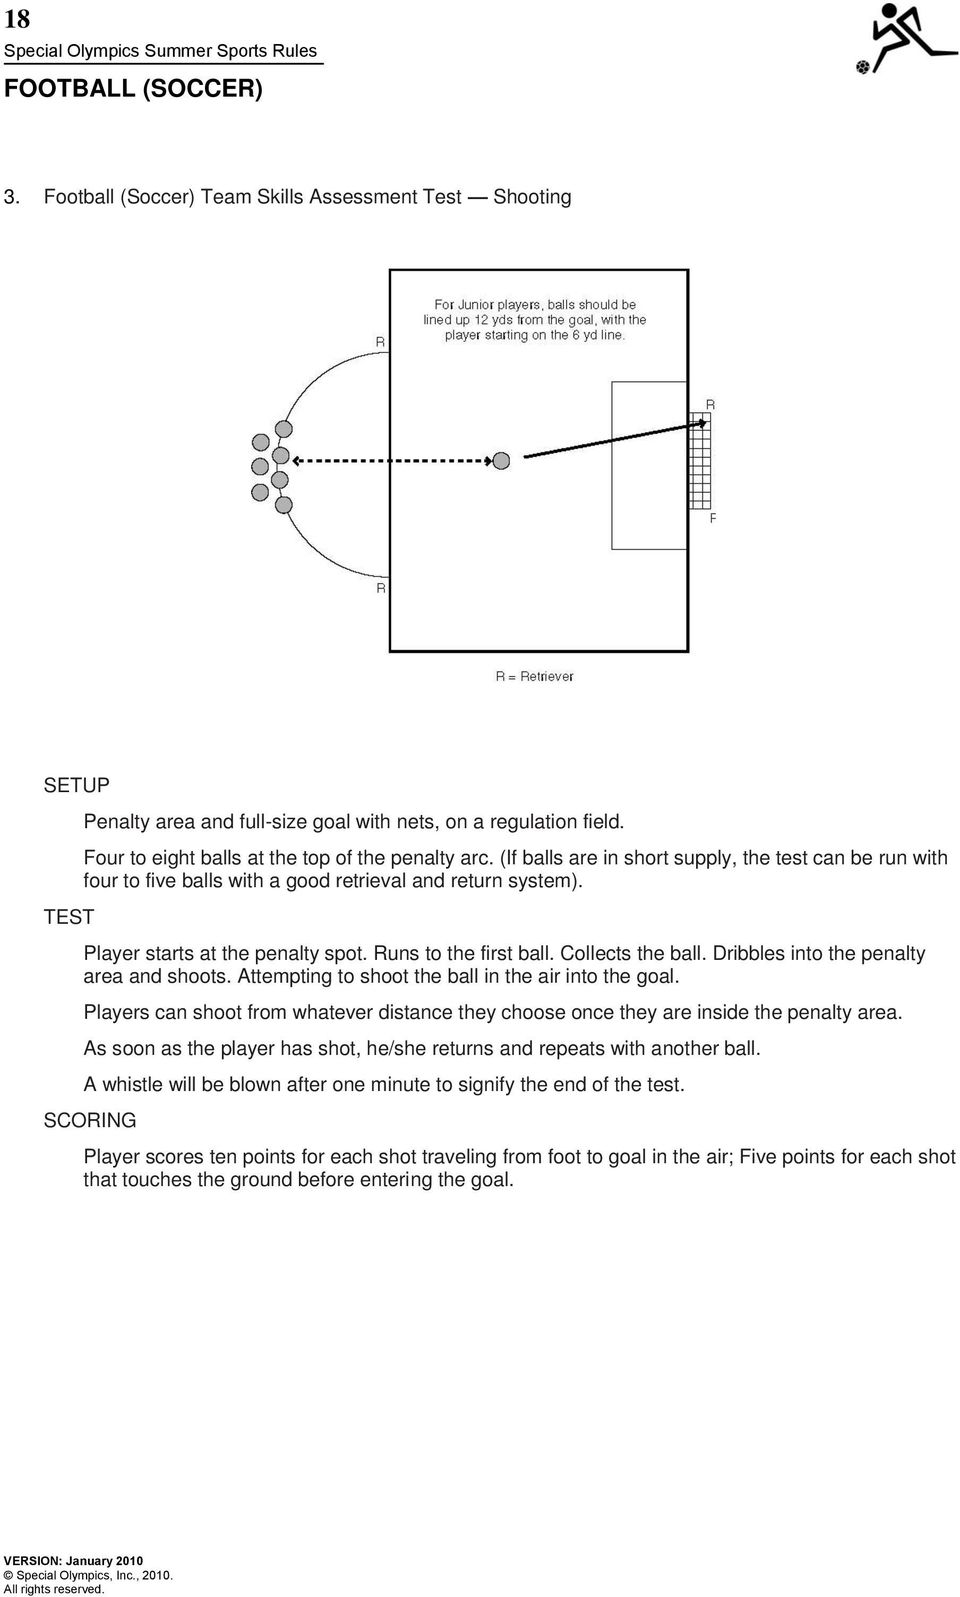 Dribbles into the penalty area and shoots. Attempting to shoot the ball in the air into the goal. Players can shoot from whatever distance they choose once they are inside the penalty area.